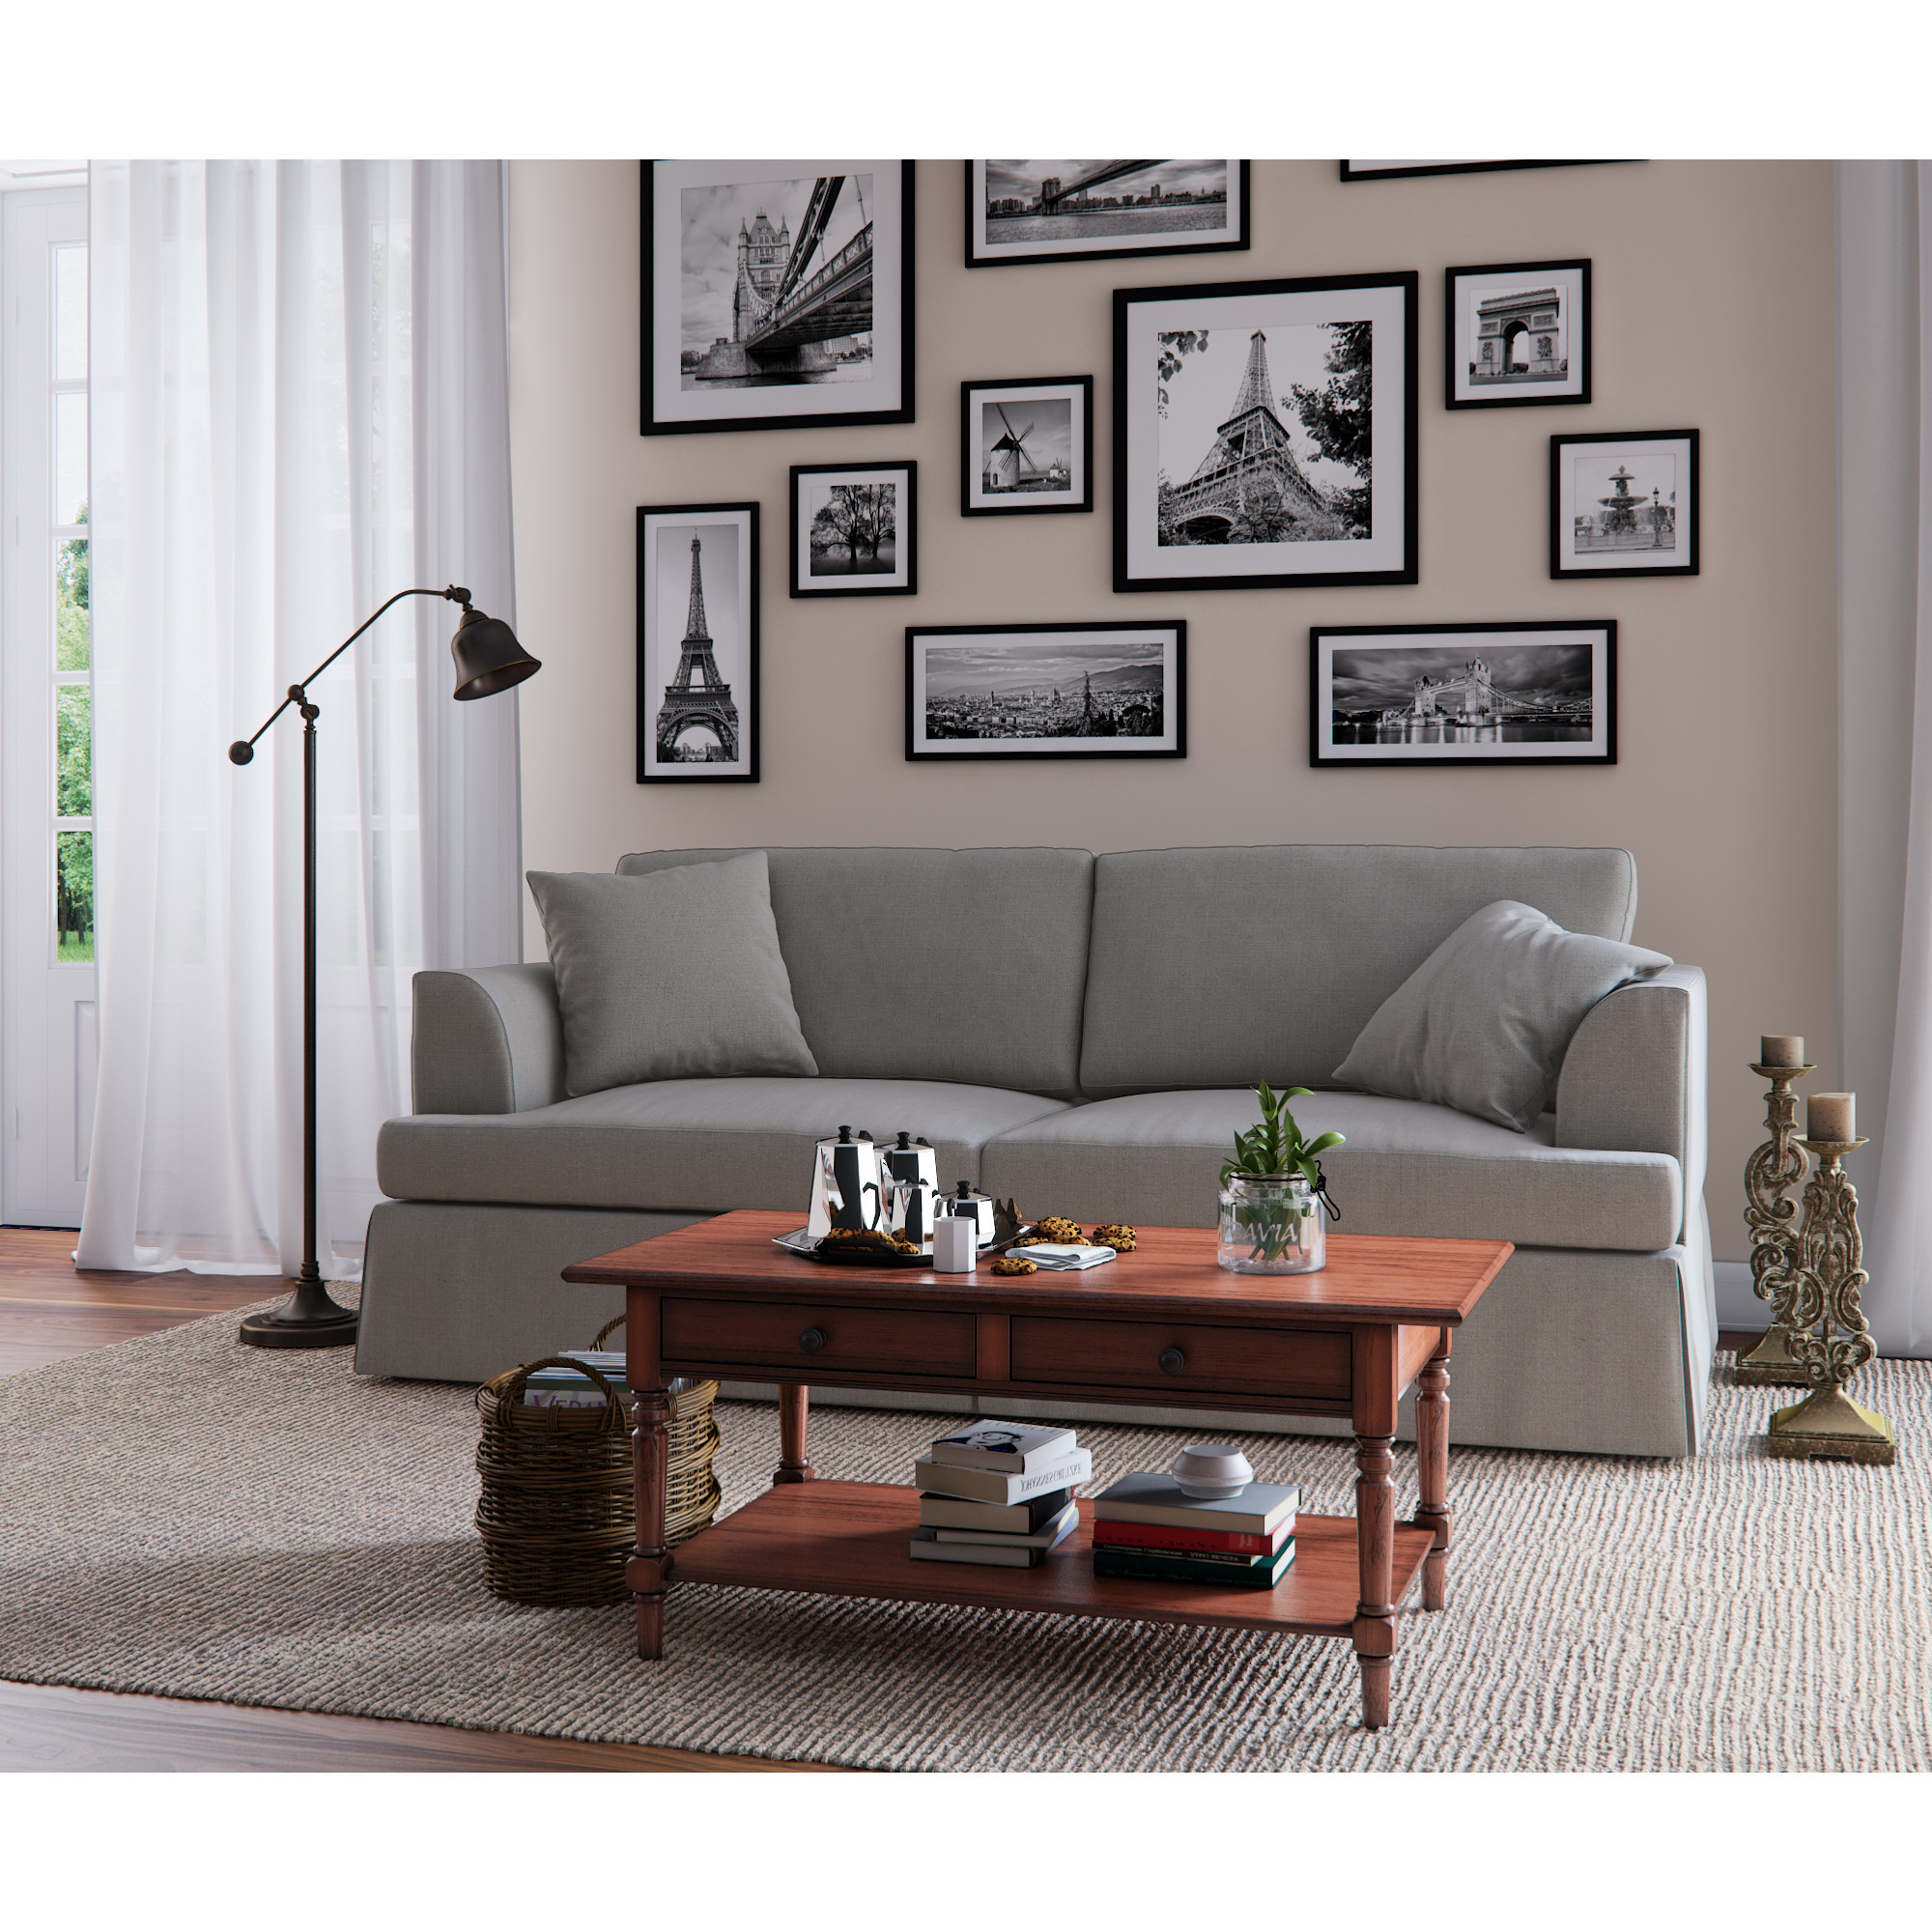 Best ideas about Wayfair Living Room Furniture . Save or Pin Wayfair Custom Upholstery Carly Sofa & Reviews Now.